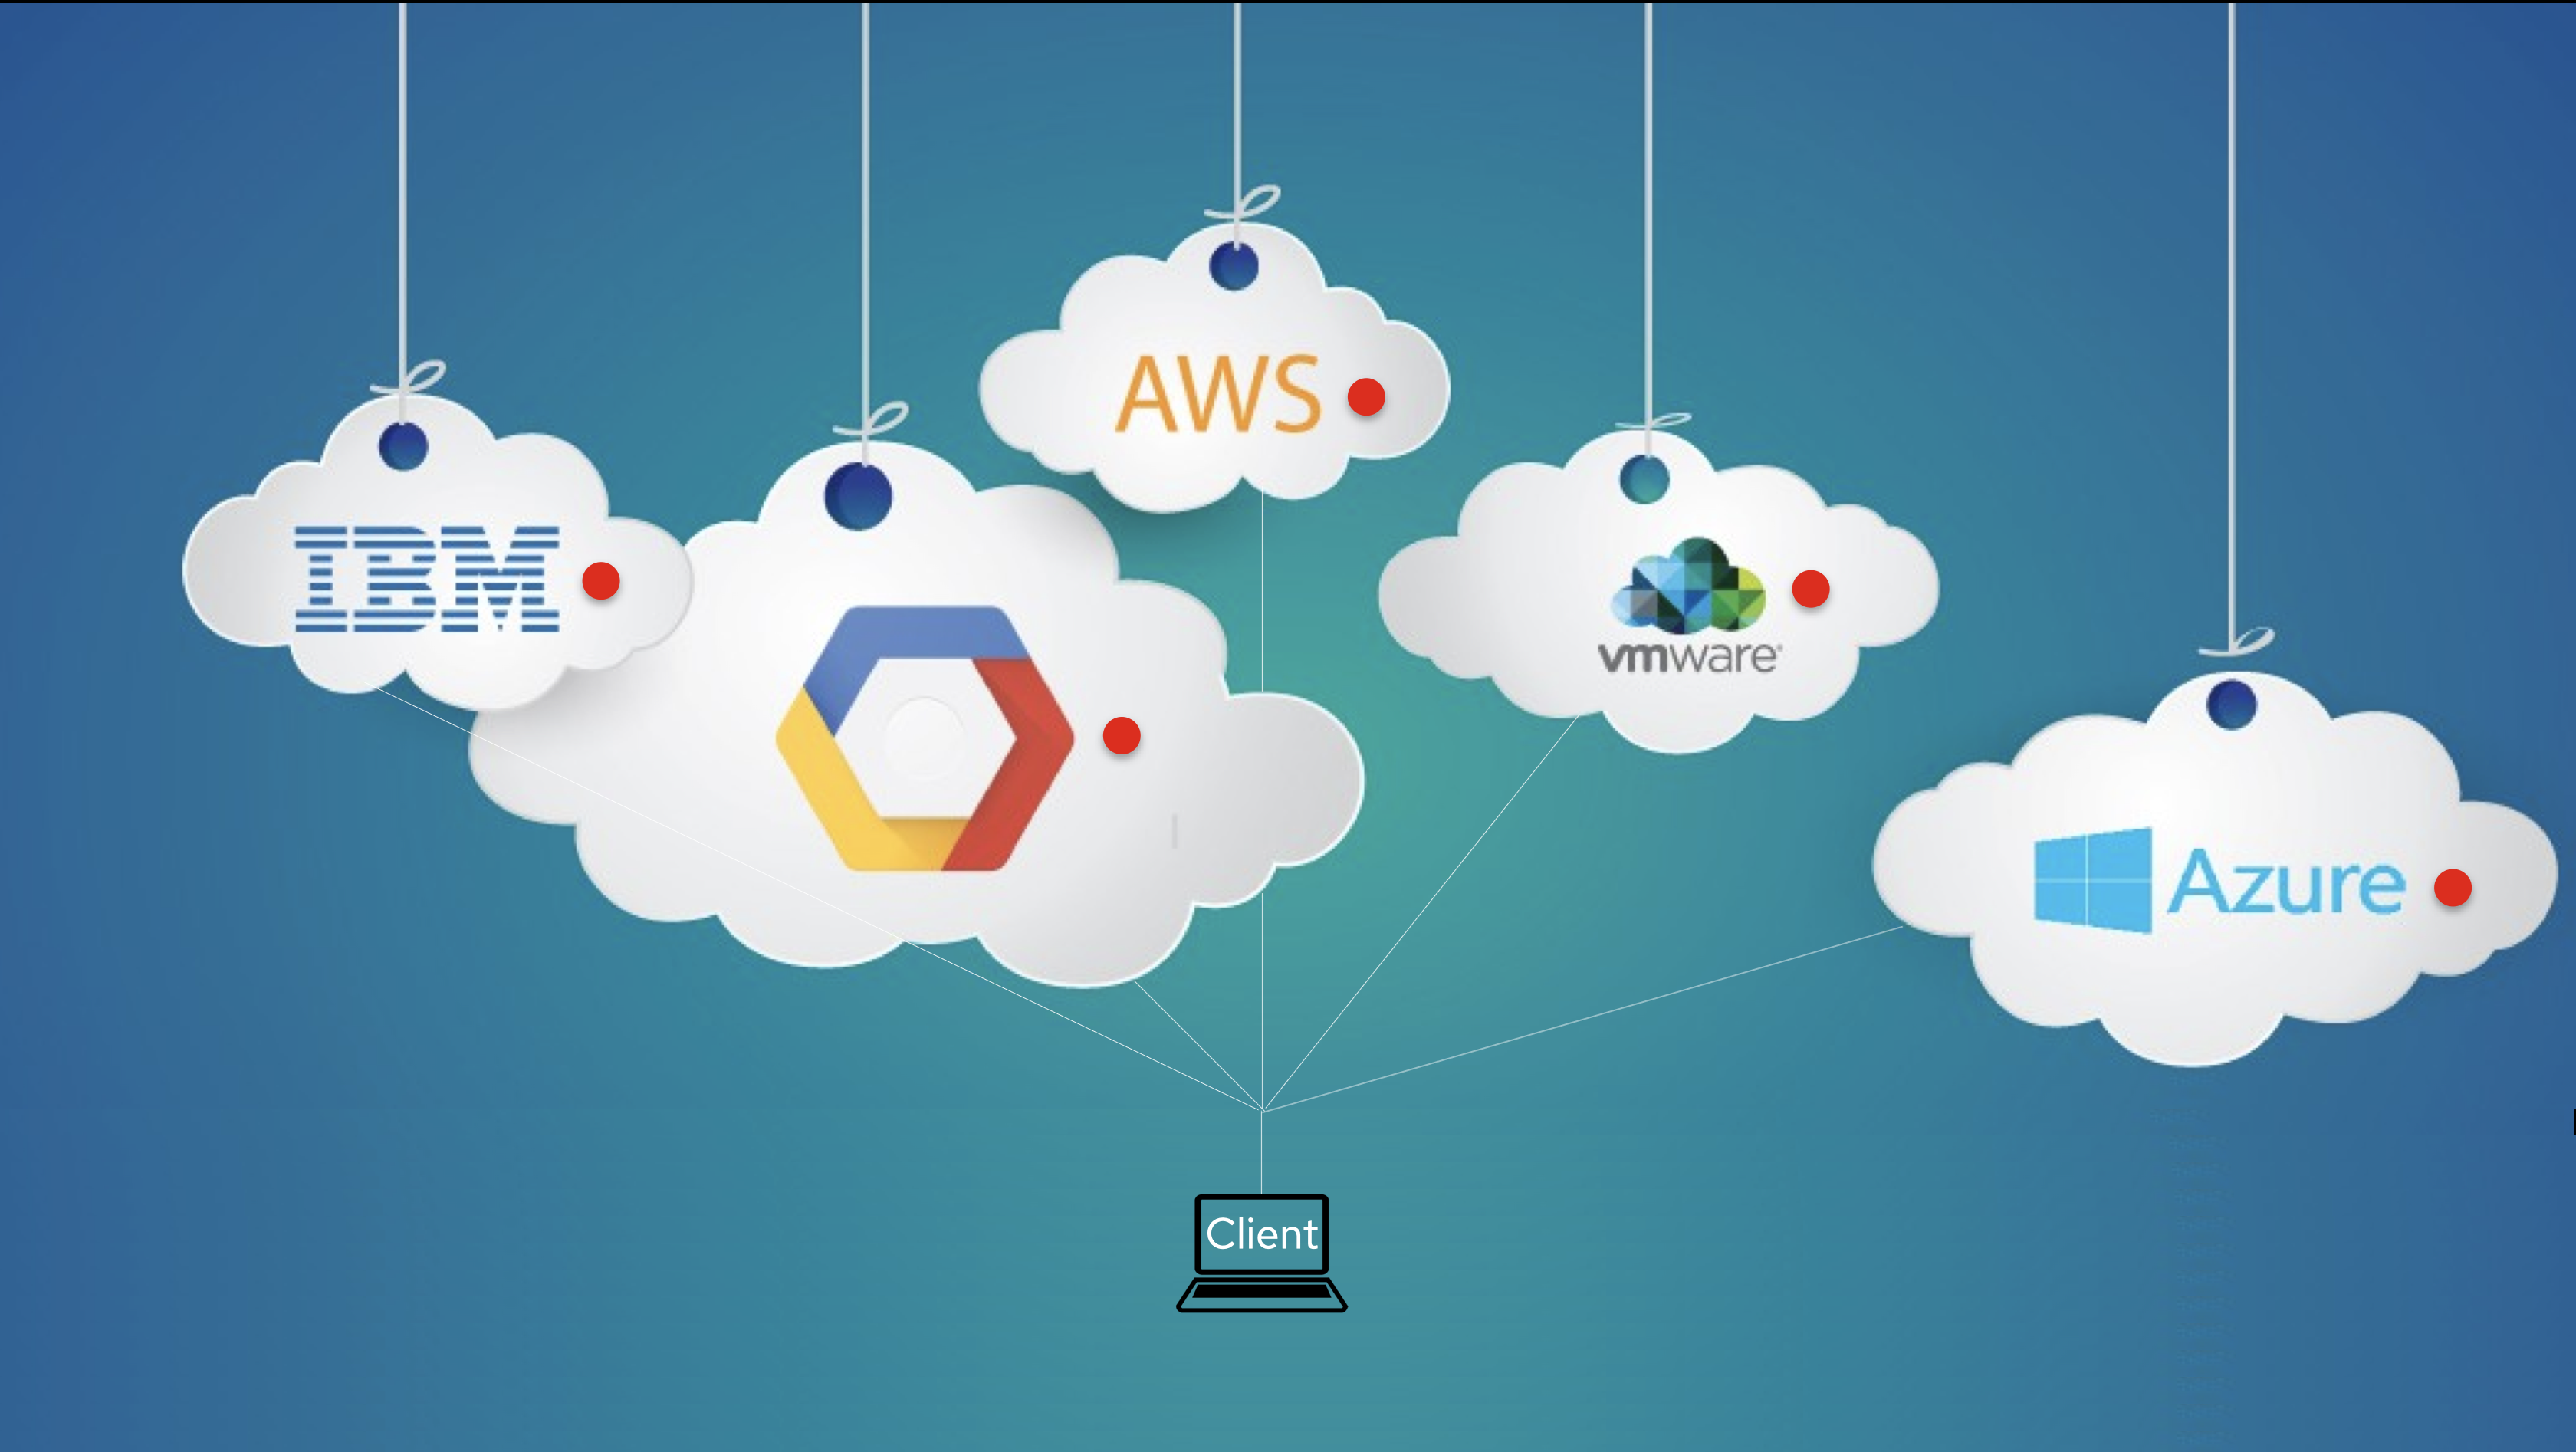 A visual representation of cloud tech across multiple providers and services